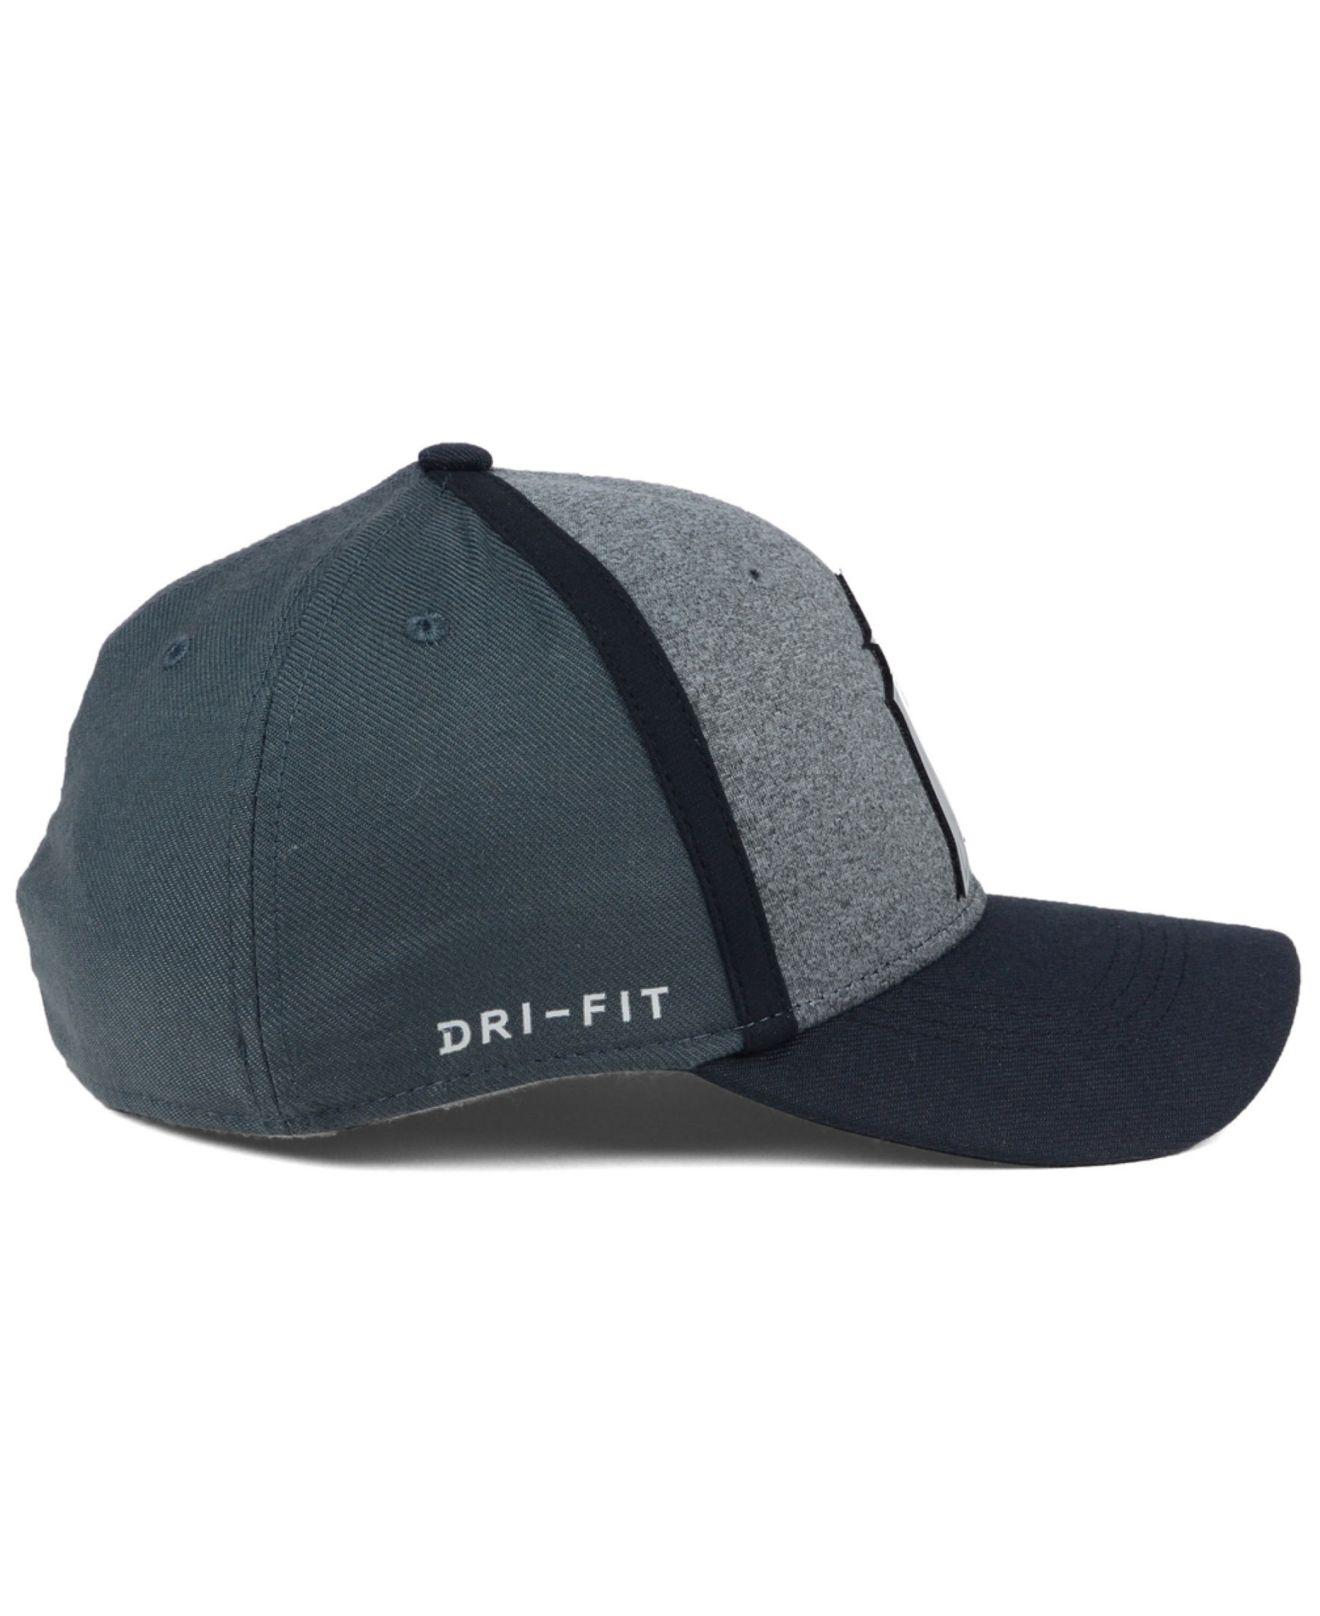 a954e84d Nike - Black Reflective Swooshflex Cap for Men - Lyst. View fullscreen